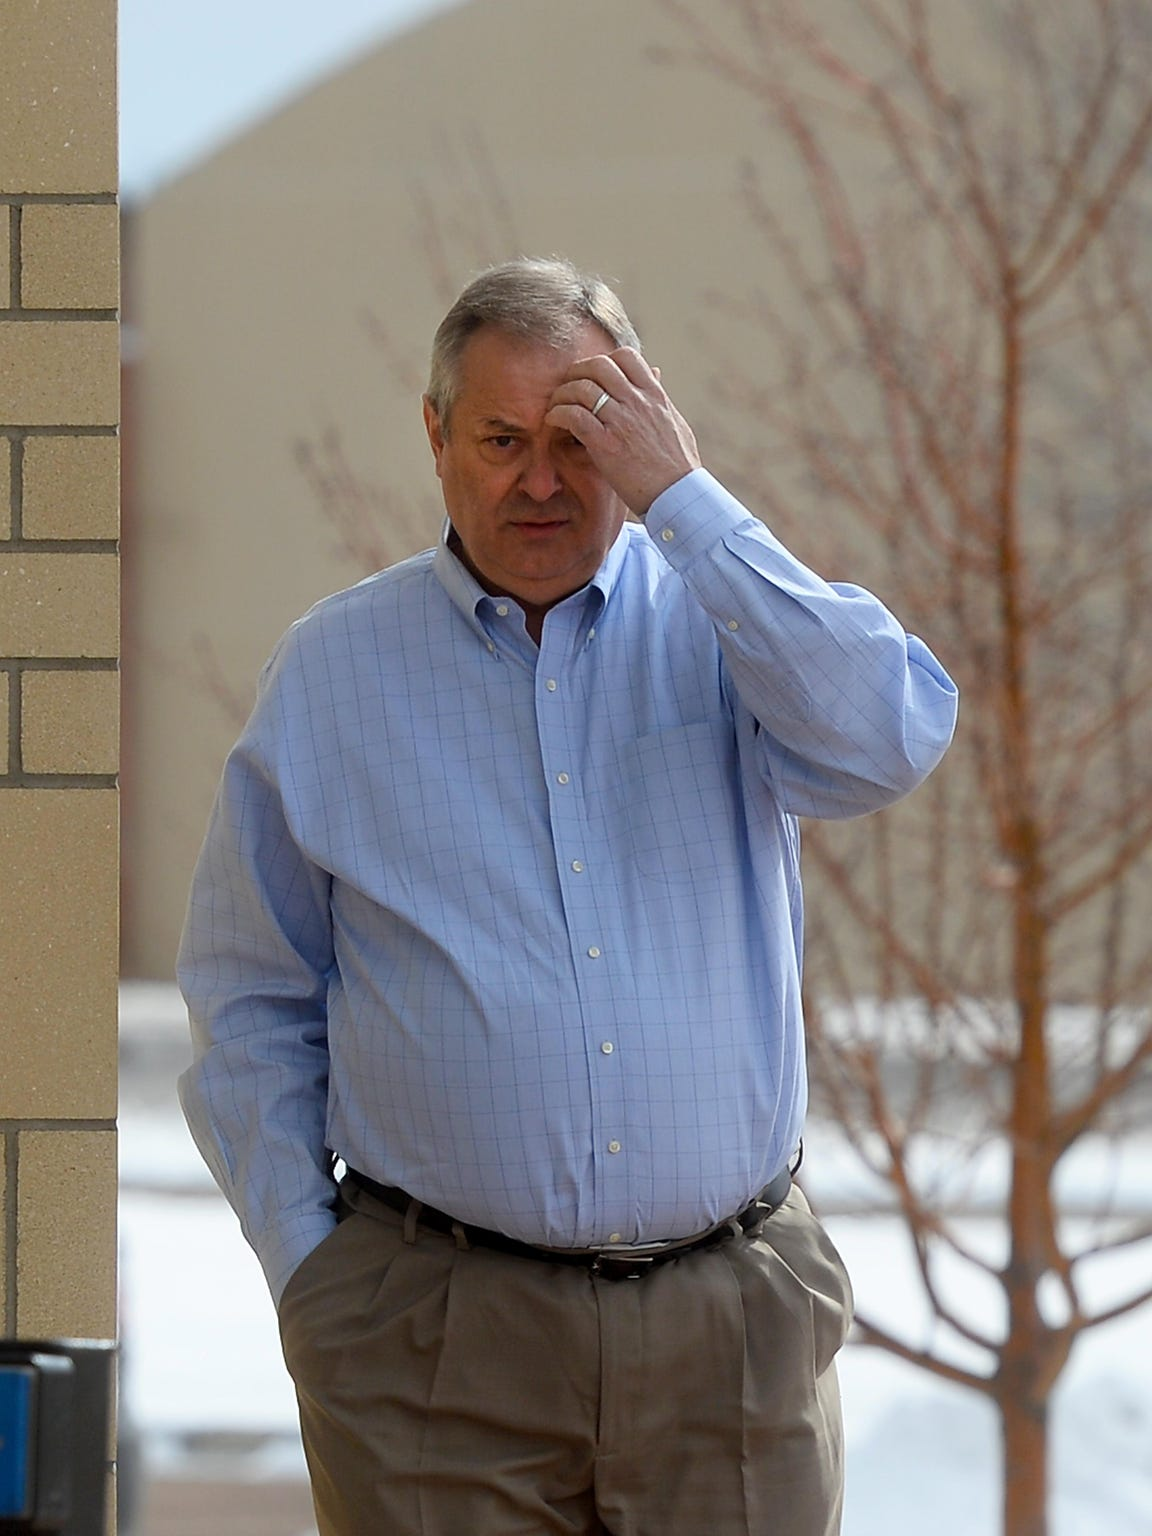 Great Falls businessman and former president of Shoot the Moon LLC Ken Hatzenbeller arrives at the Missouri River Federal Courthouse on Tuesday where he plead guilty to one count of bank fraud, a charge with a maximum sentence of 30-years in prison.